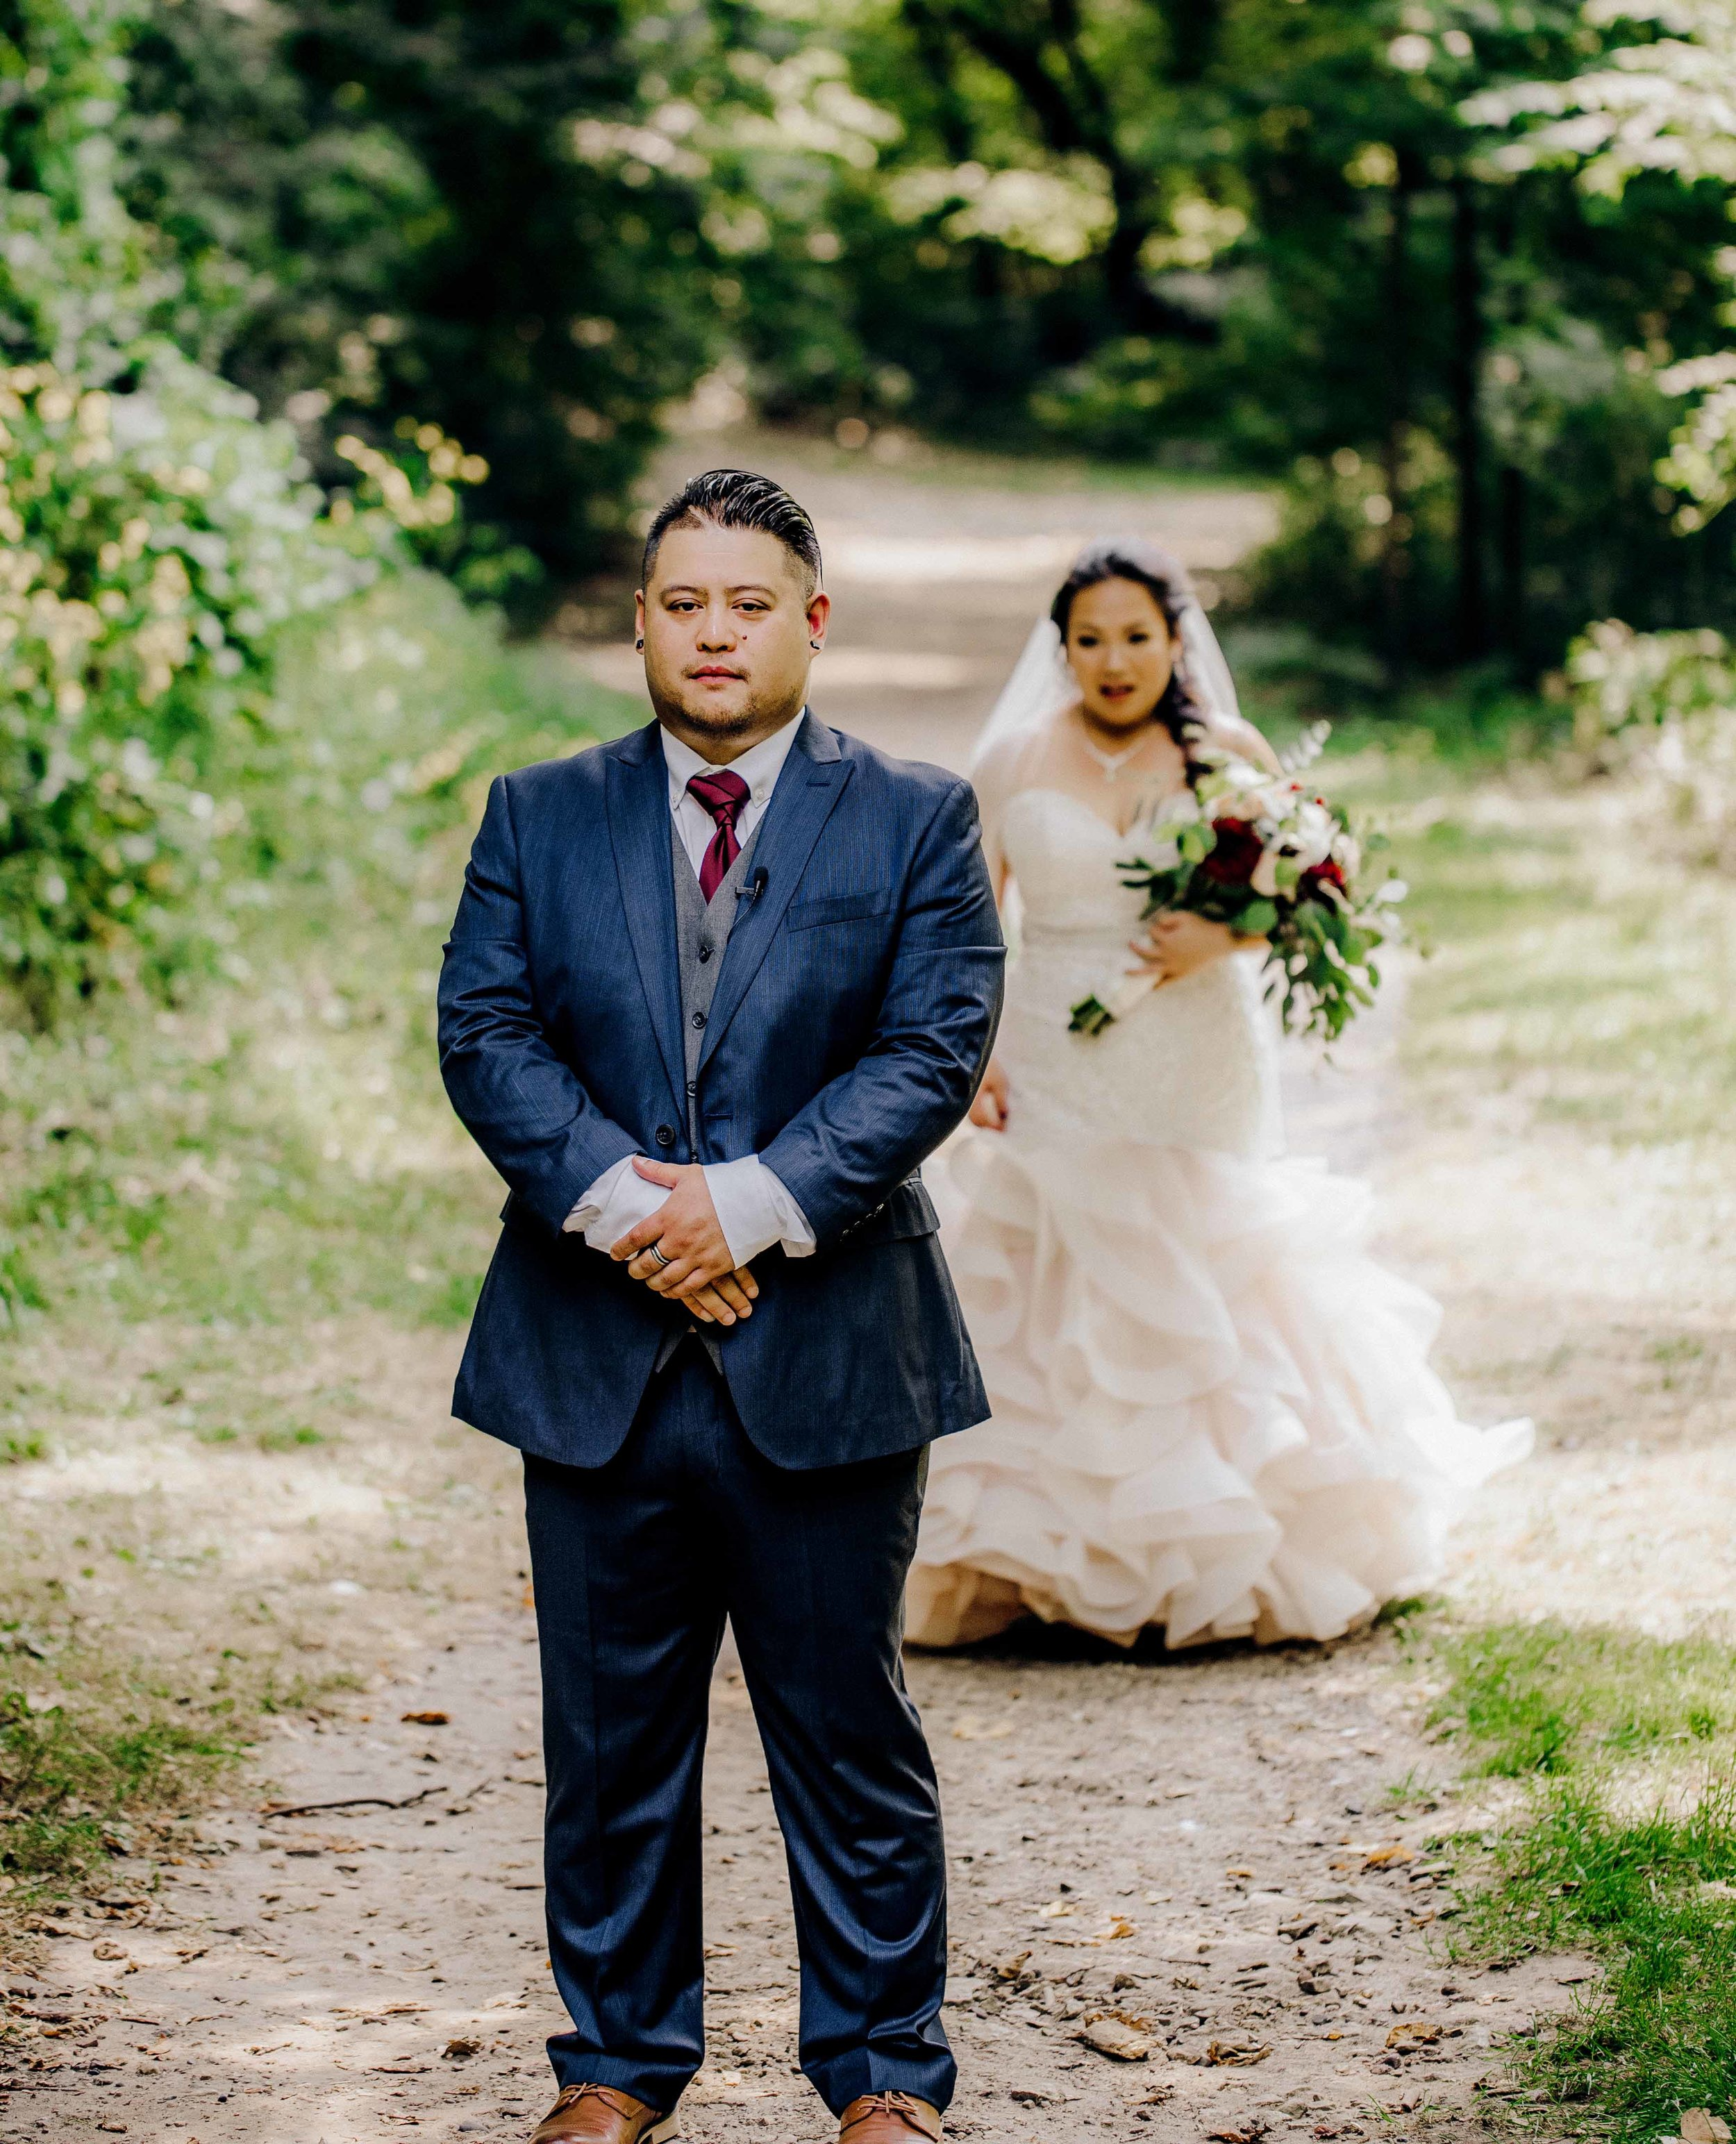 Becky + Kong, Part II, Bride, Groom, and Party-23.jpg